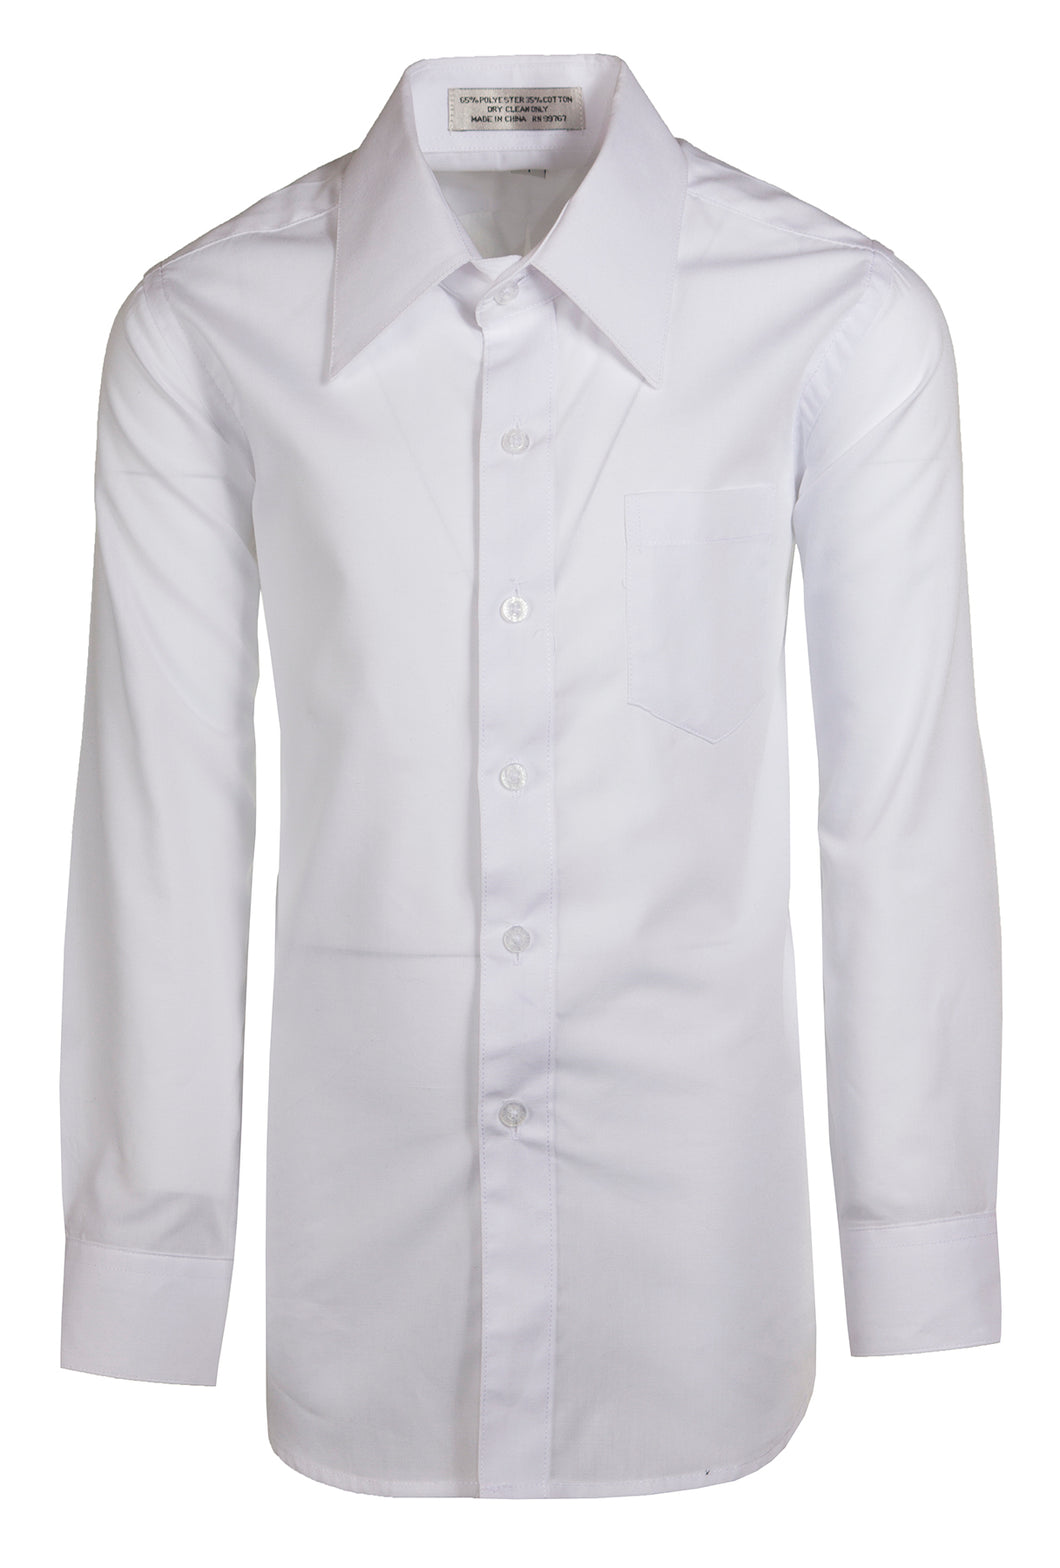 Formal Button Up Colored Dress Shirts - Classic Colors (Colton)